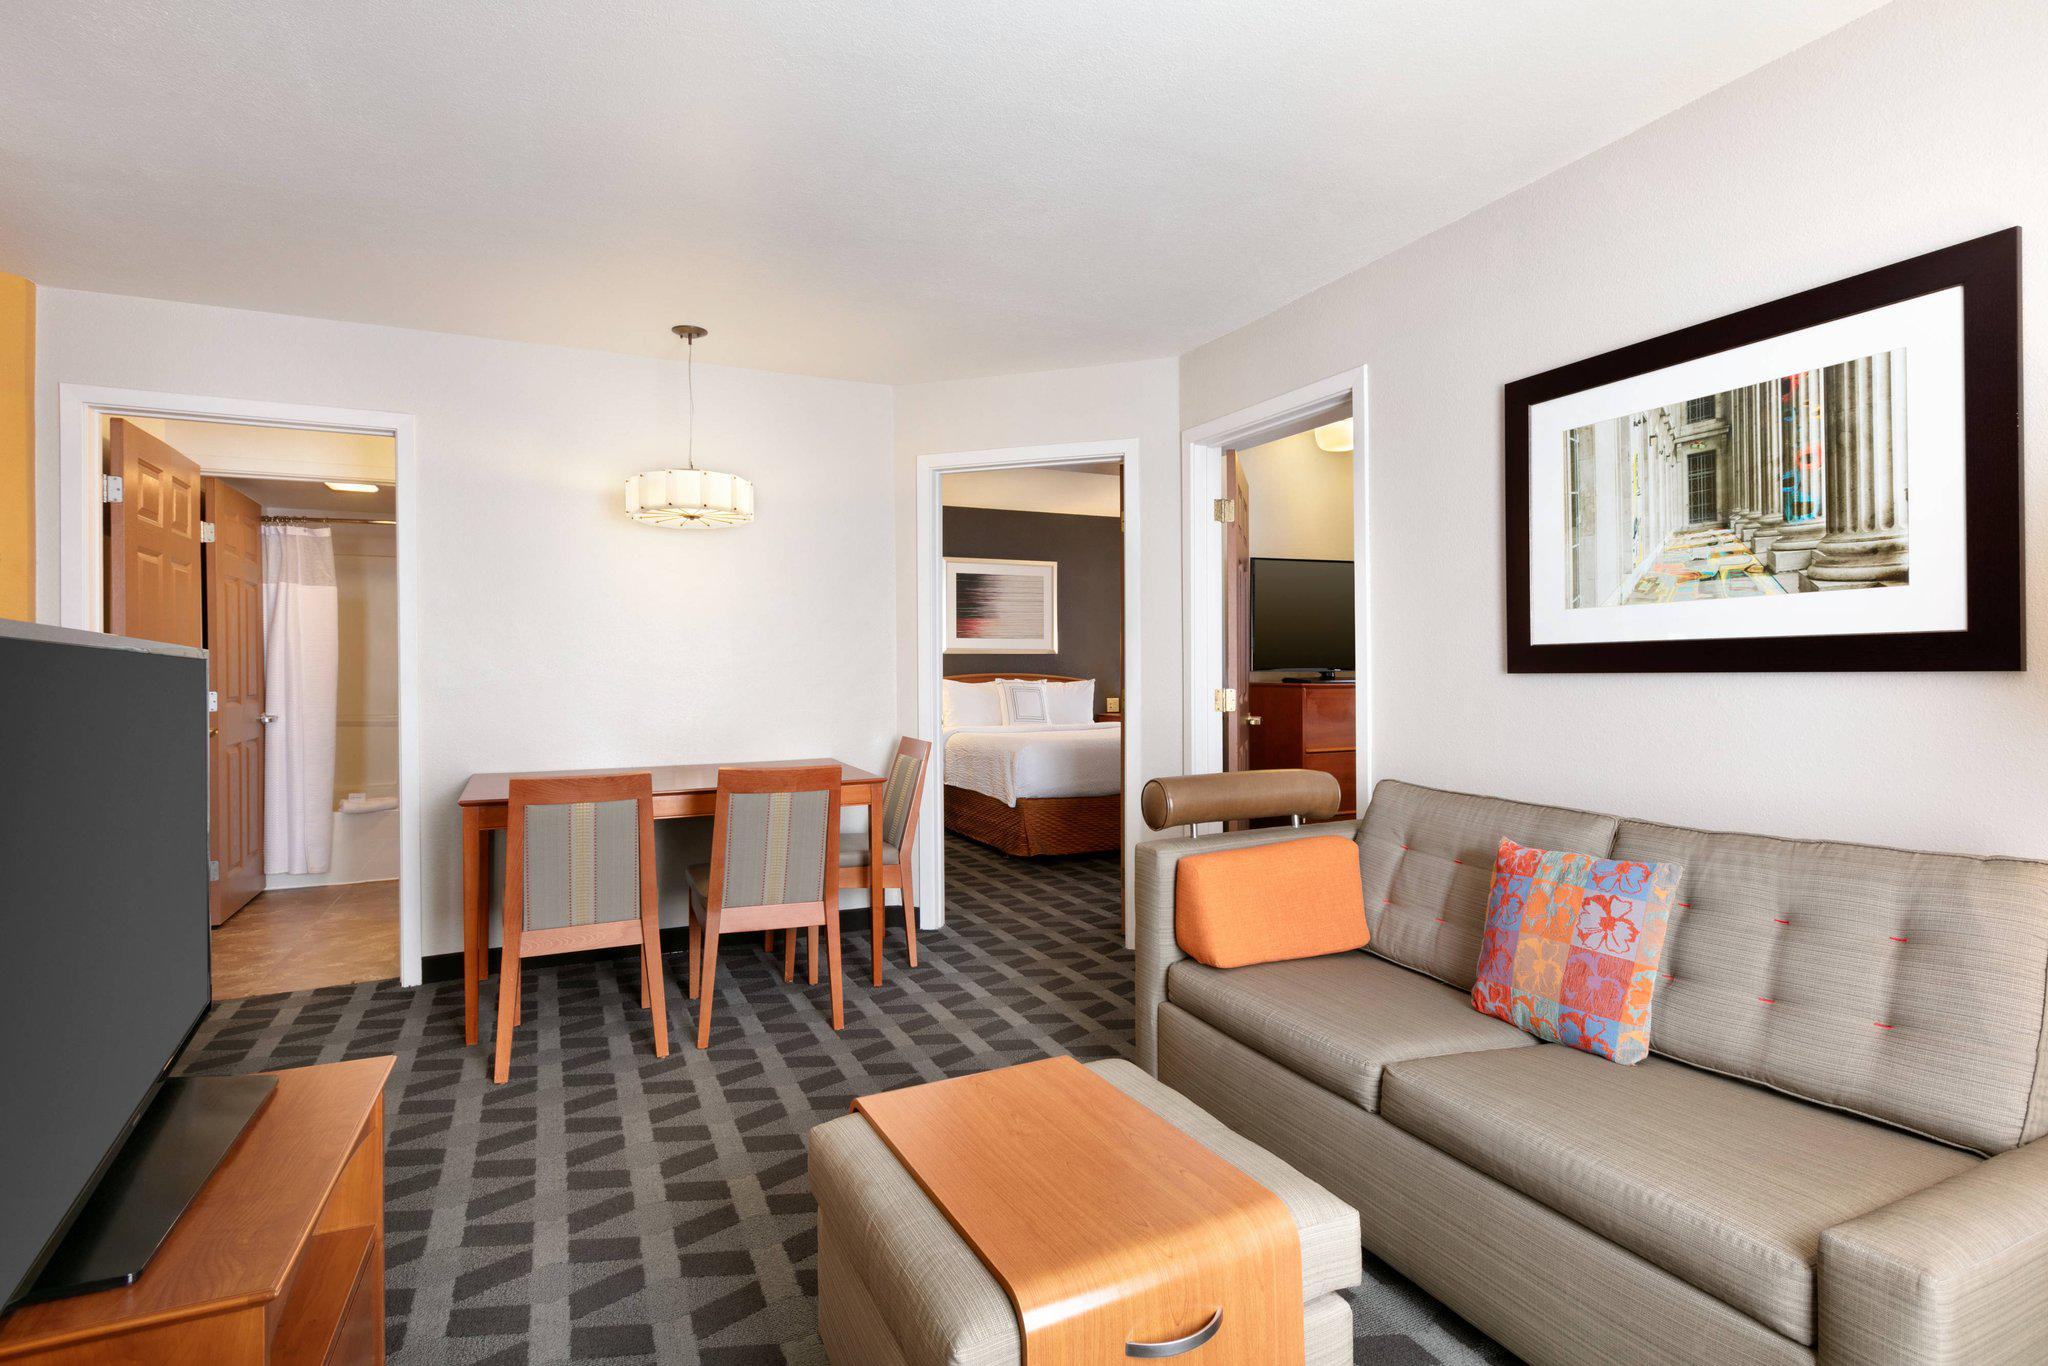 TownePlace Suites by Marriott Gaithersburg